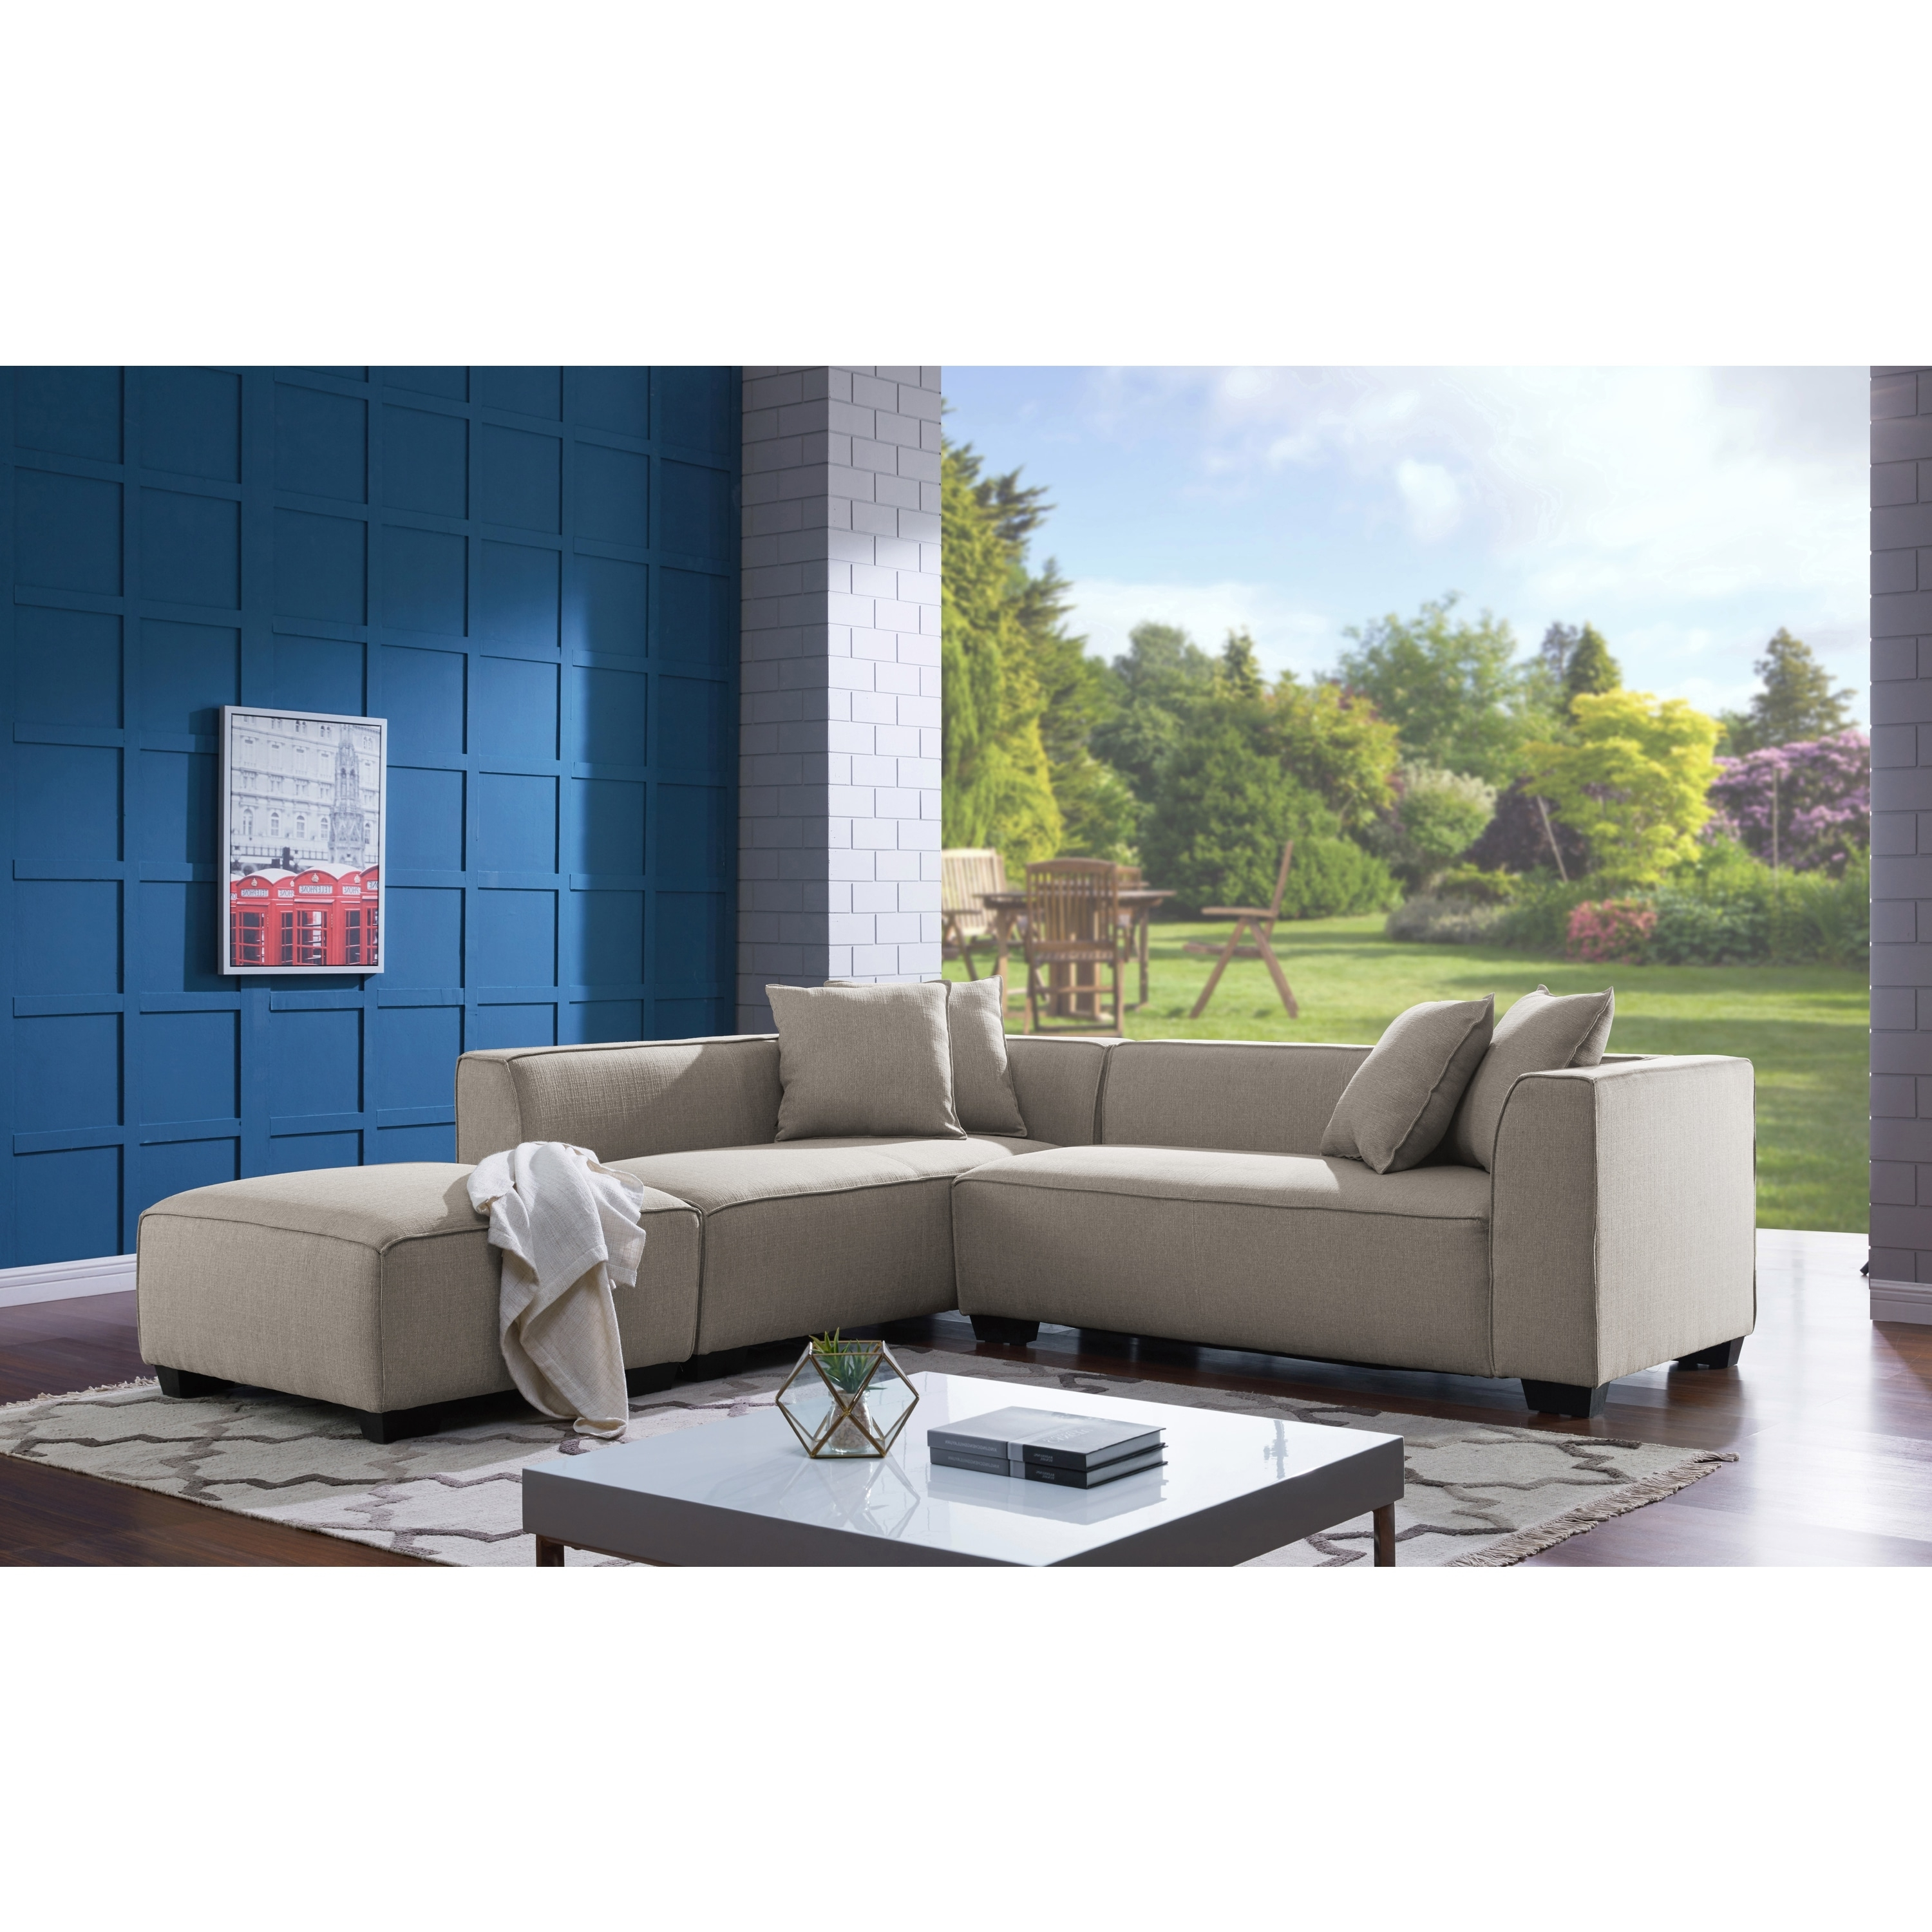 Famous Handy Living Phoenix Barley Tan Sectional Sofa With Ottoman – Free Within Phoenix Sectional Sofas (View 15 of 15)